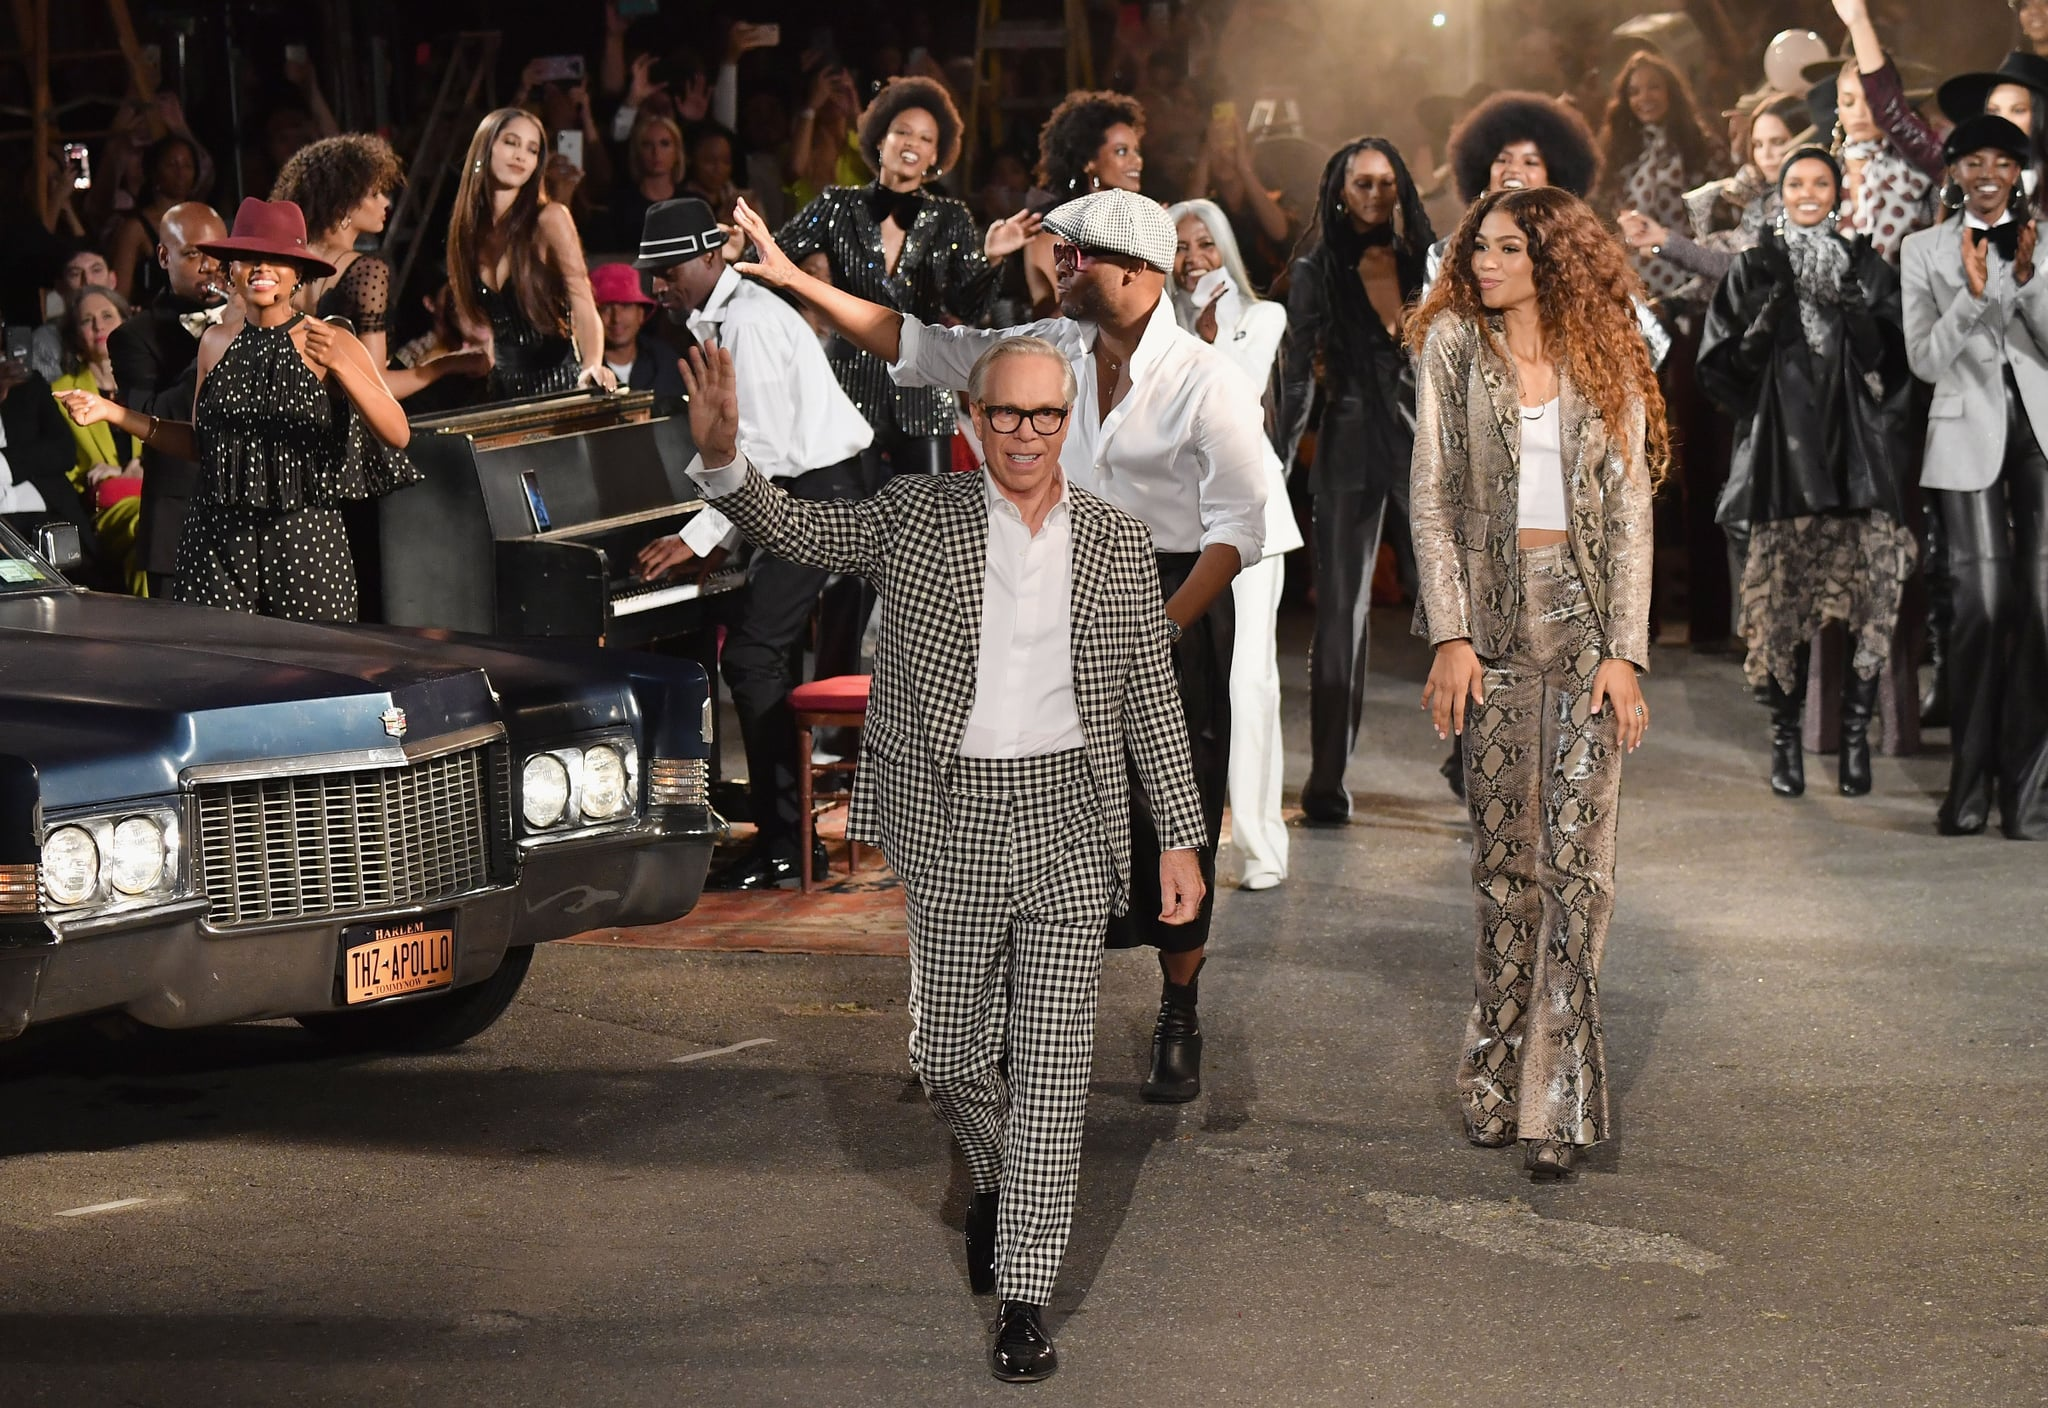 Designer Tommy Hilfiger and actress Zendaya walk the runway at the Tommy Hilfiger TommyNow fall runway show at the Apollo Theatre on September 8, 2019 in New York City. (Photo by Angela Weiss / AFP)        (Photo credit should read ANGELA WEISS/AFP via Getty Images)